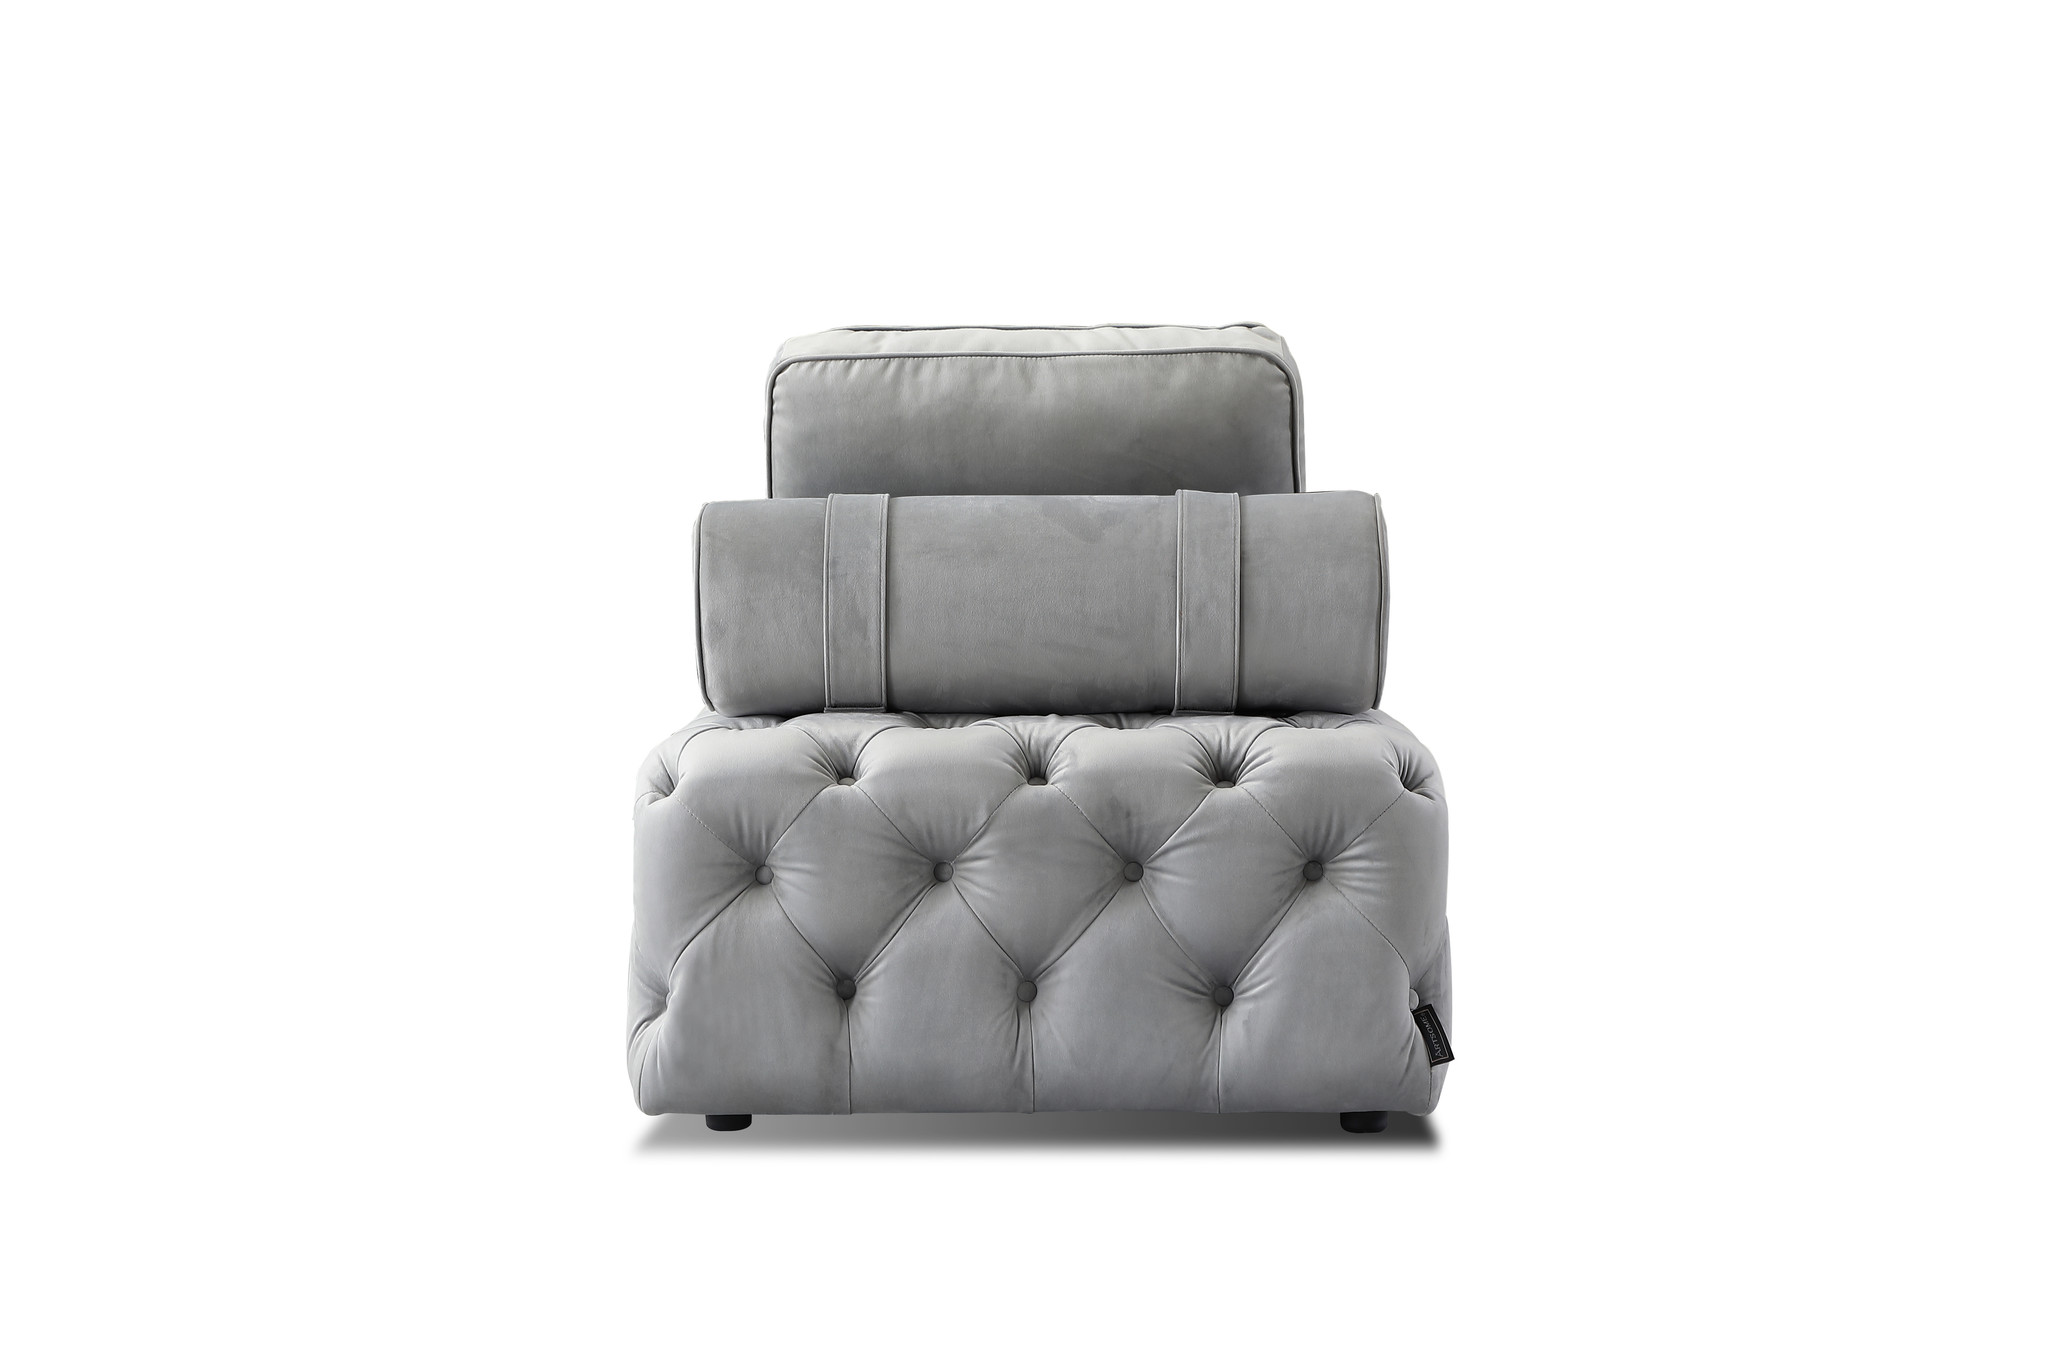 DELUXE Chaise longue-3